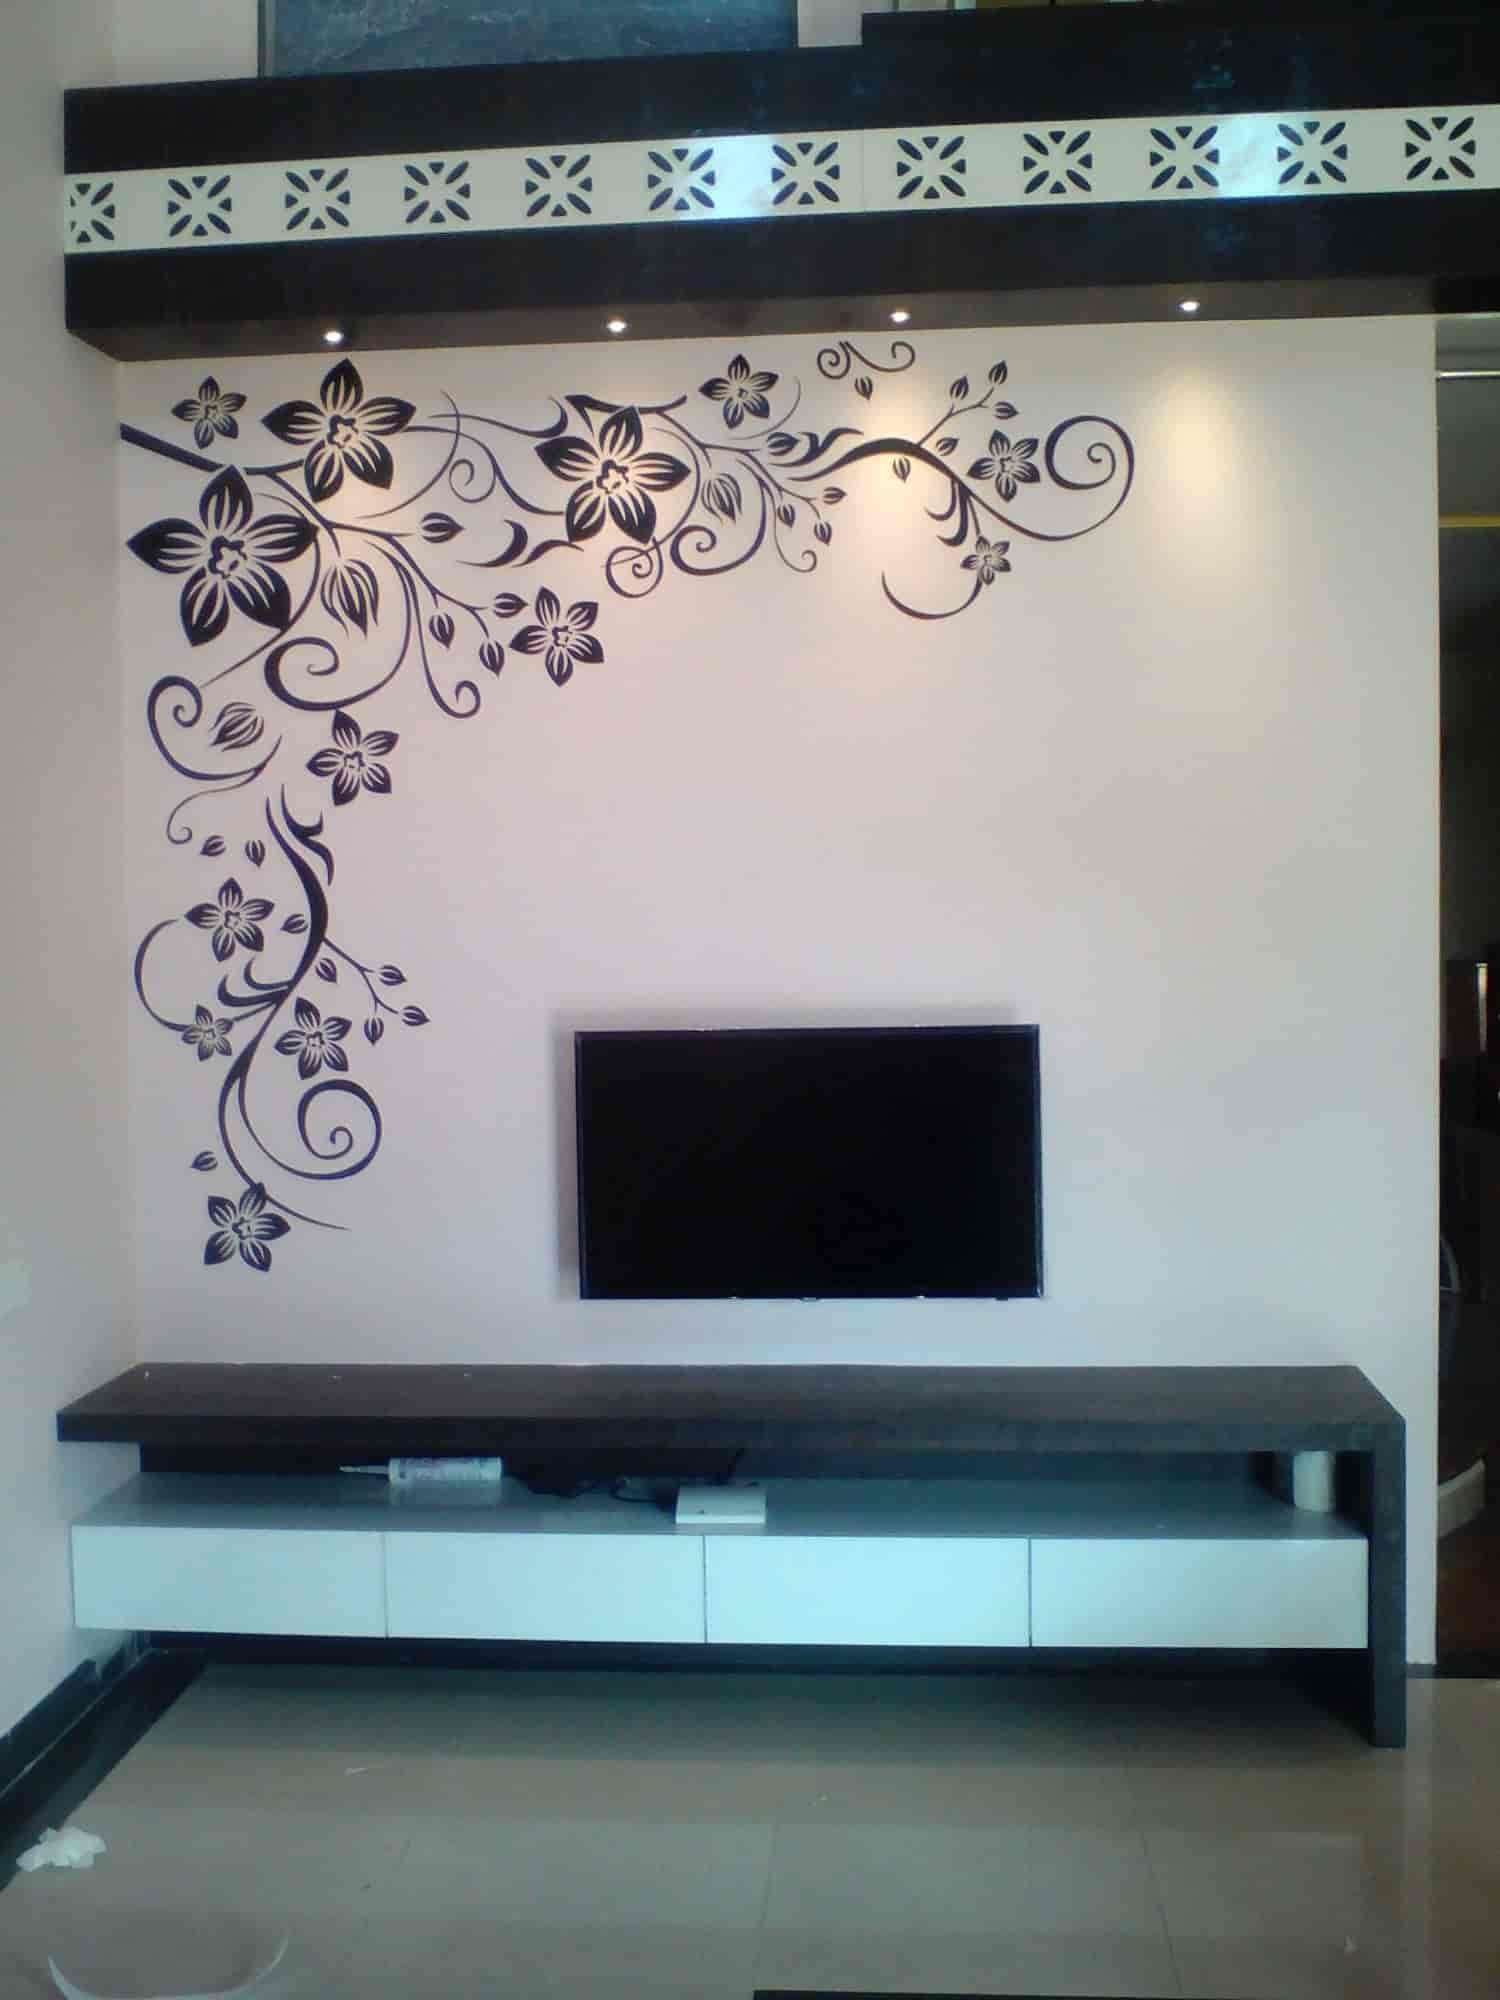 will benefits your loved home can that to unimportant make you is krupa and room interiors beth interior an lived everyday take services feel hiring house like mg show a in designer ways of